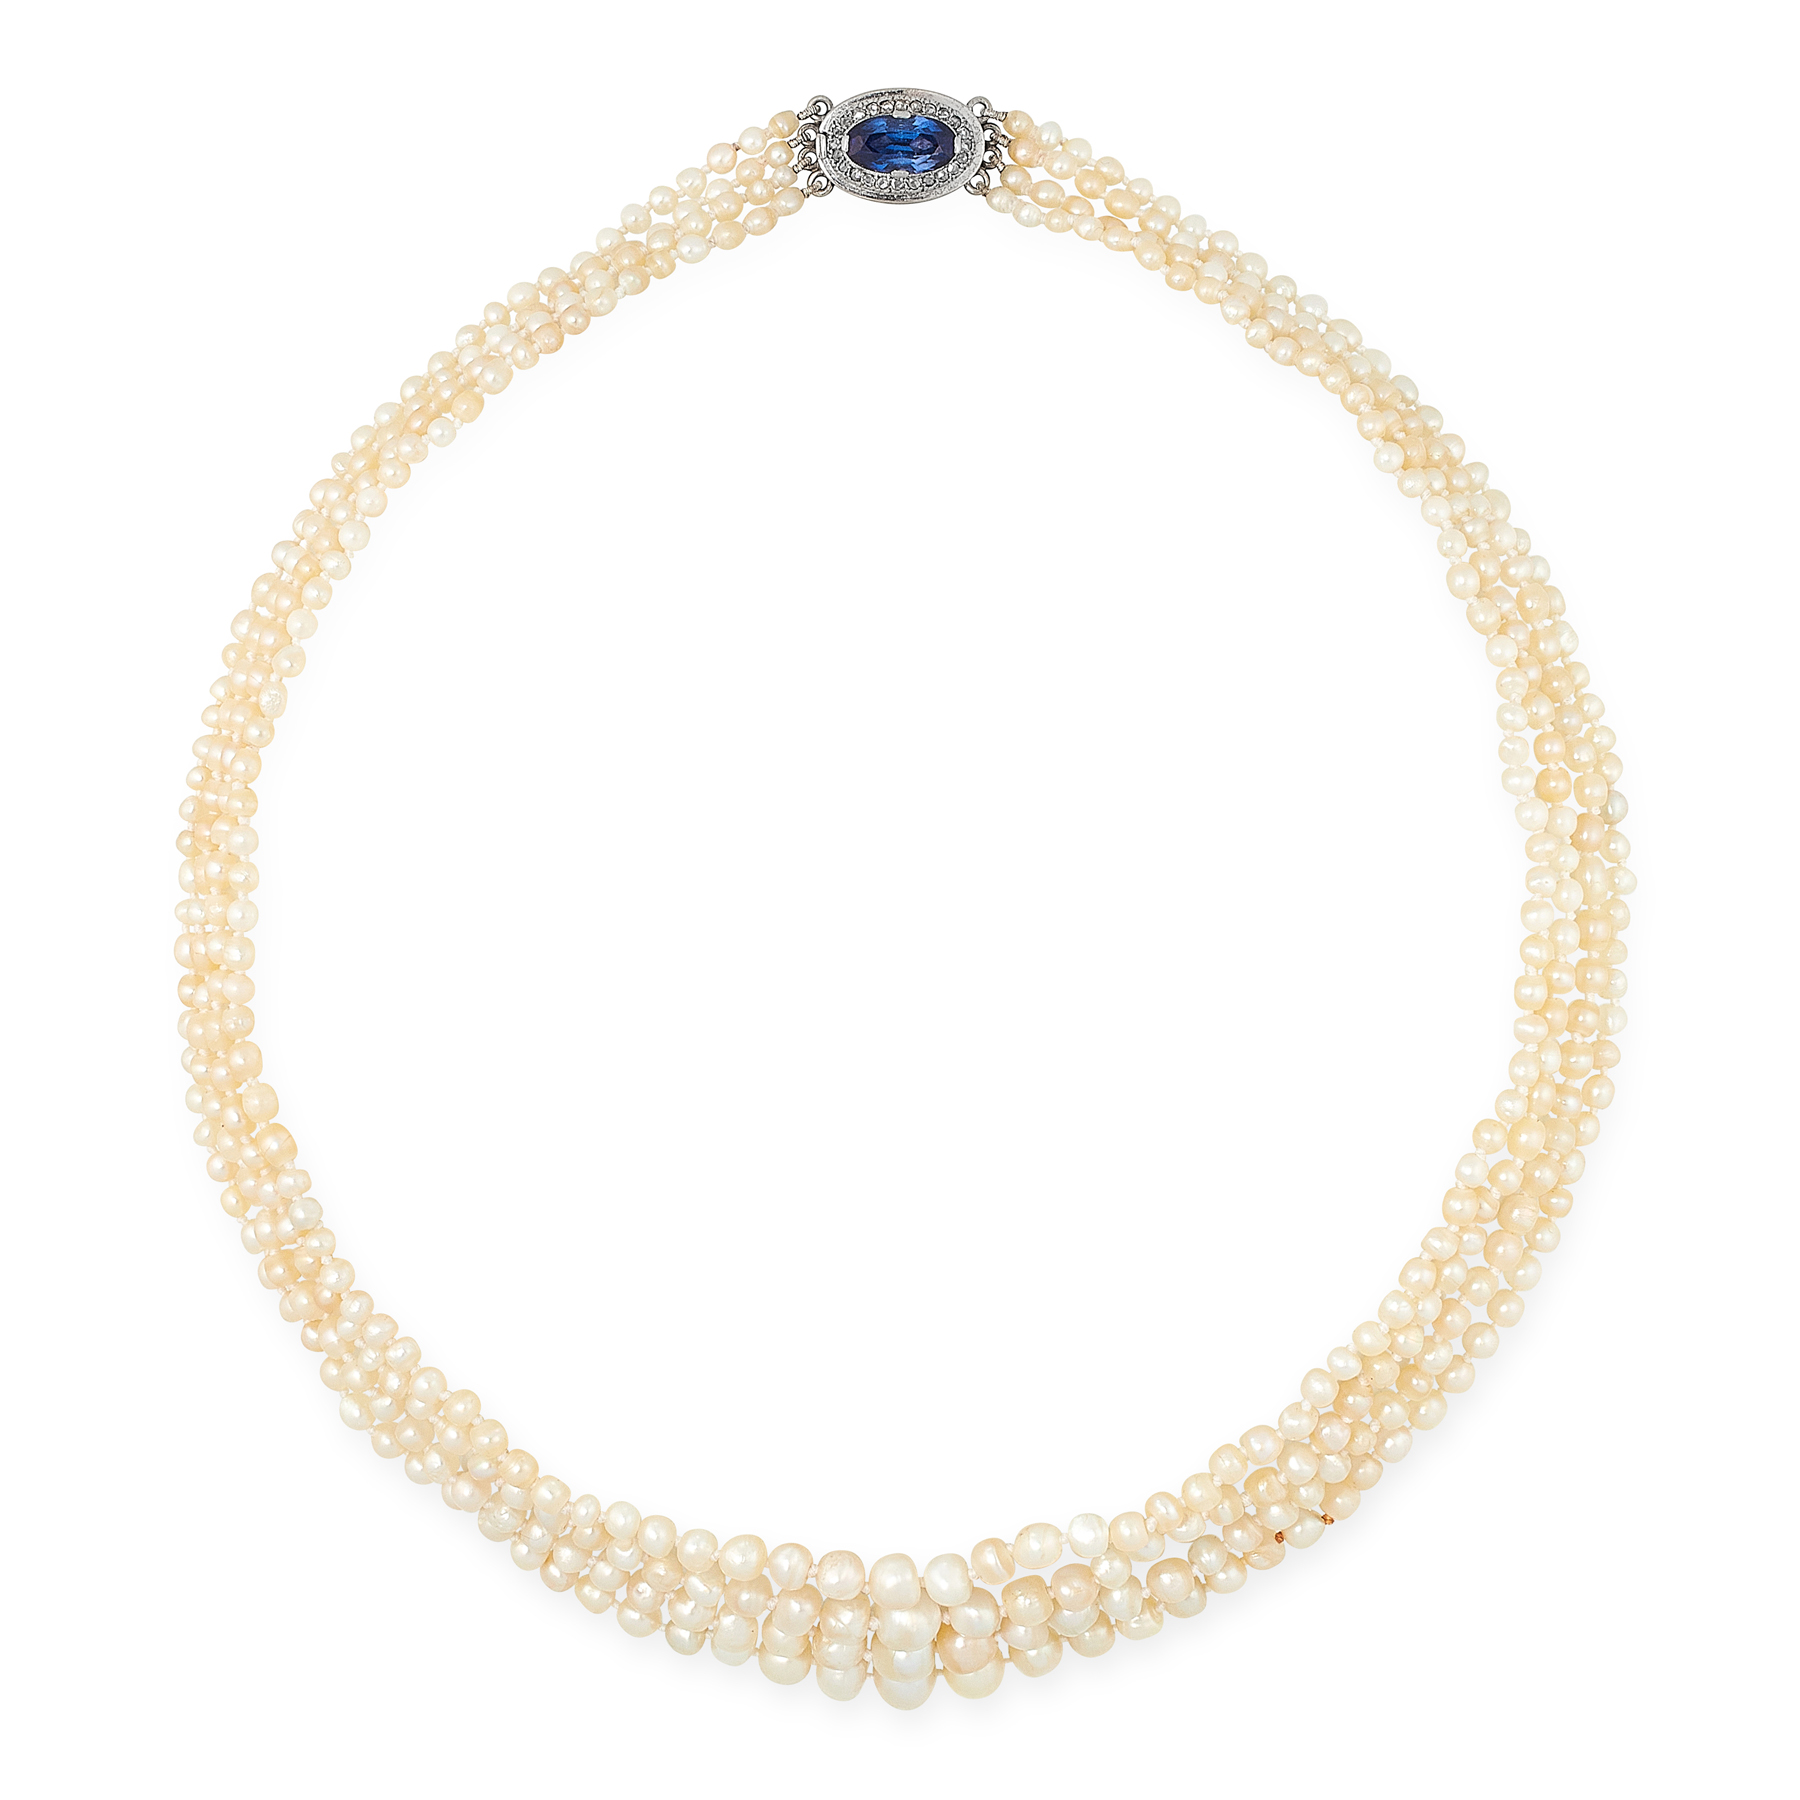 AN ANTIQUE NATURAL PEARL, SAPPHIRE AND DIAMOND NECKLACE comprising four rows of four hundred and